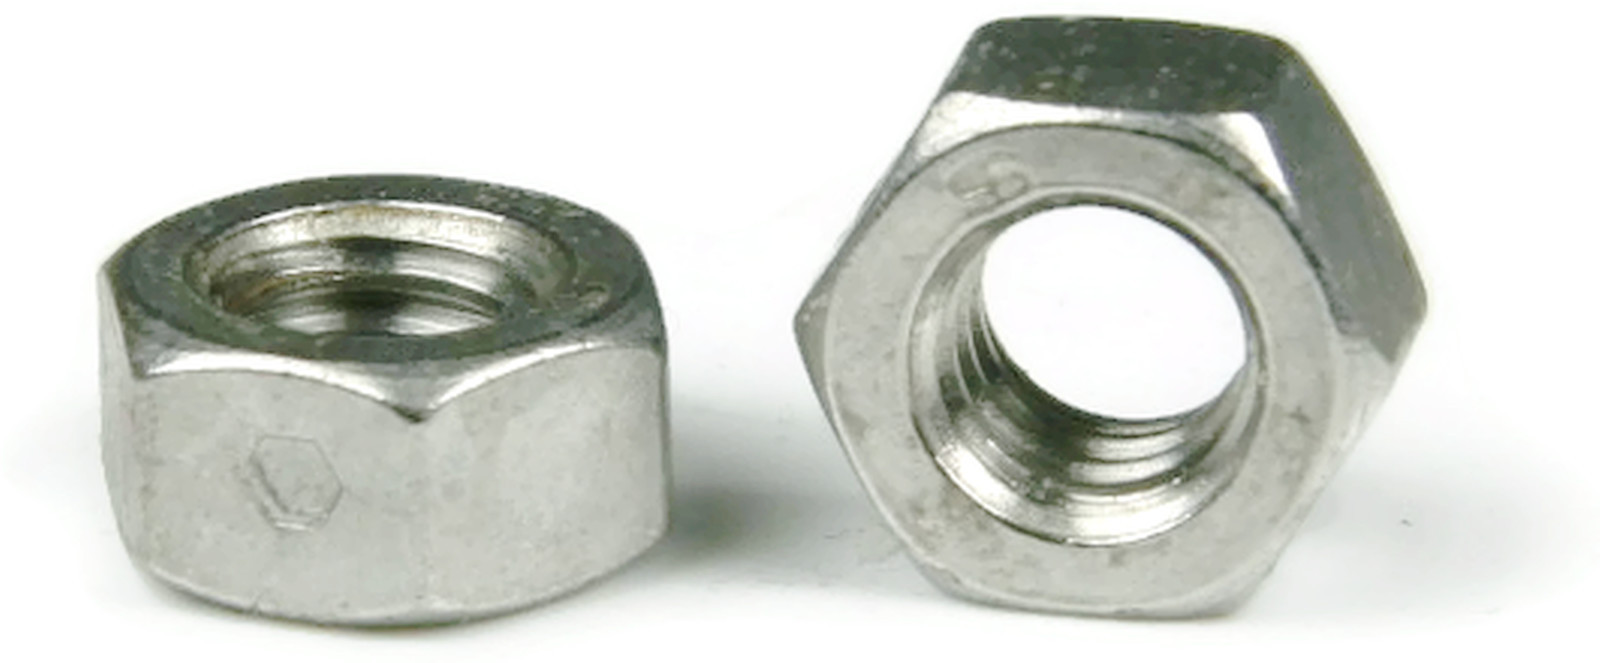 Qty 25 Two Way Hex Lock Nut Stainless Steel UNC 3//8-16